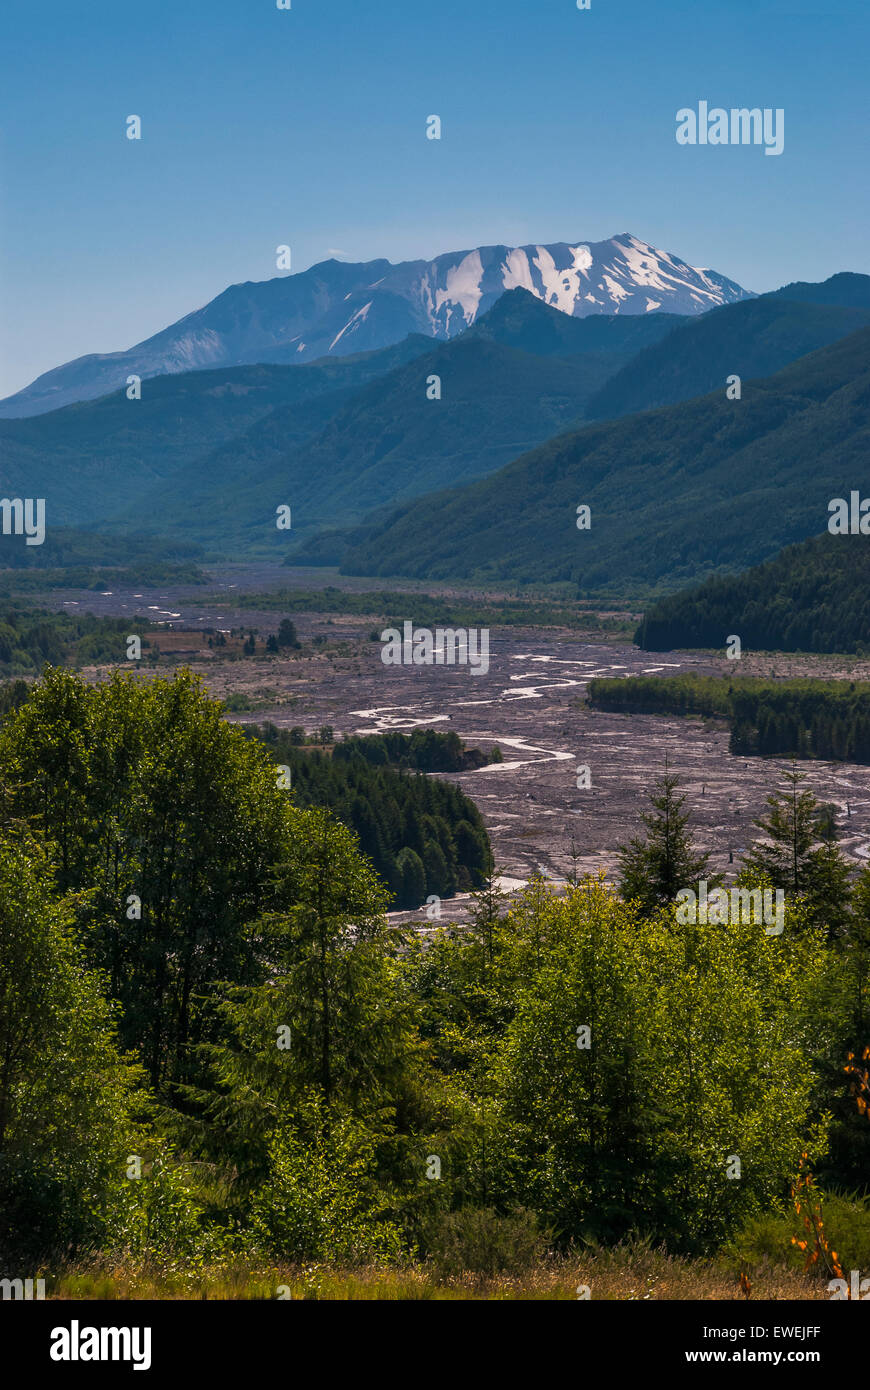 View of Mt. St. Helens with devastation caused by eruption in 1980 in middle of image. - Stock Image